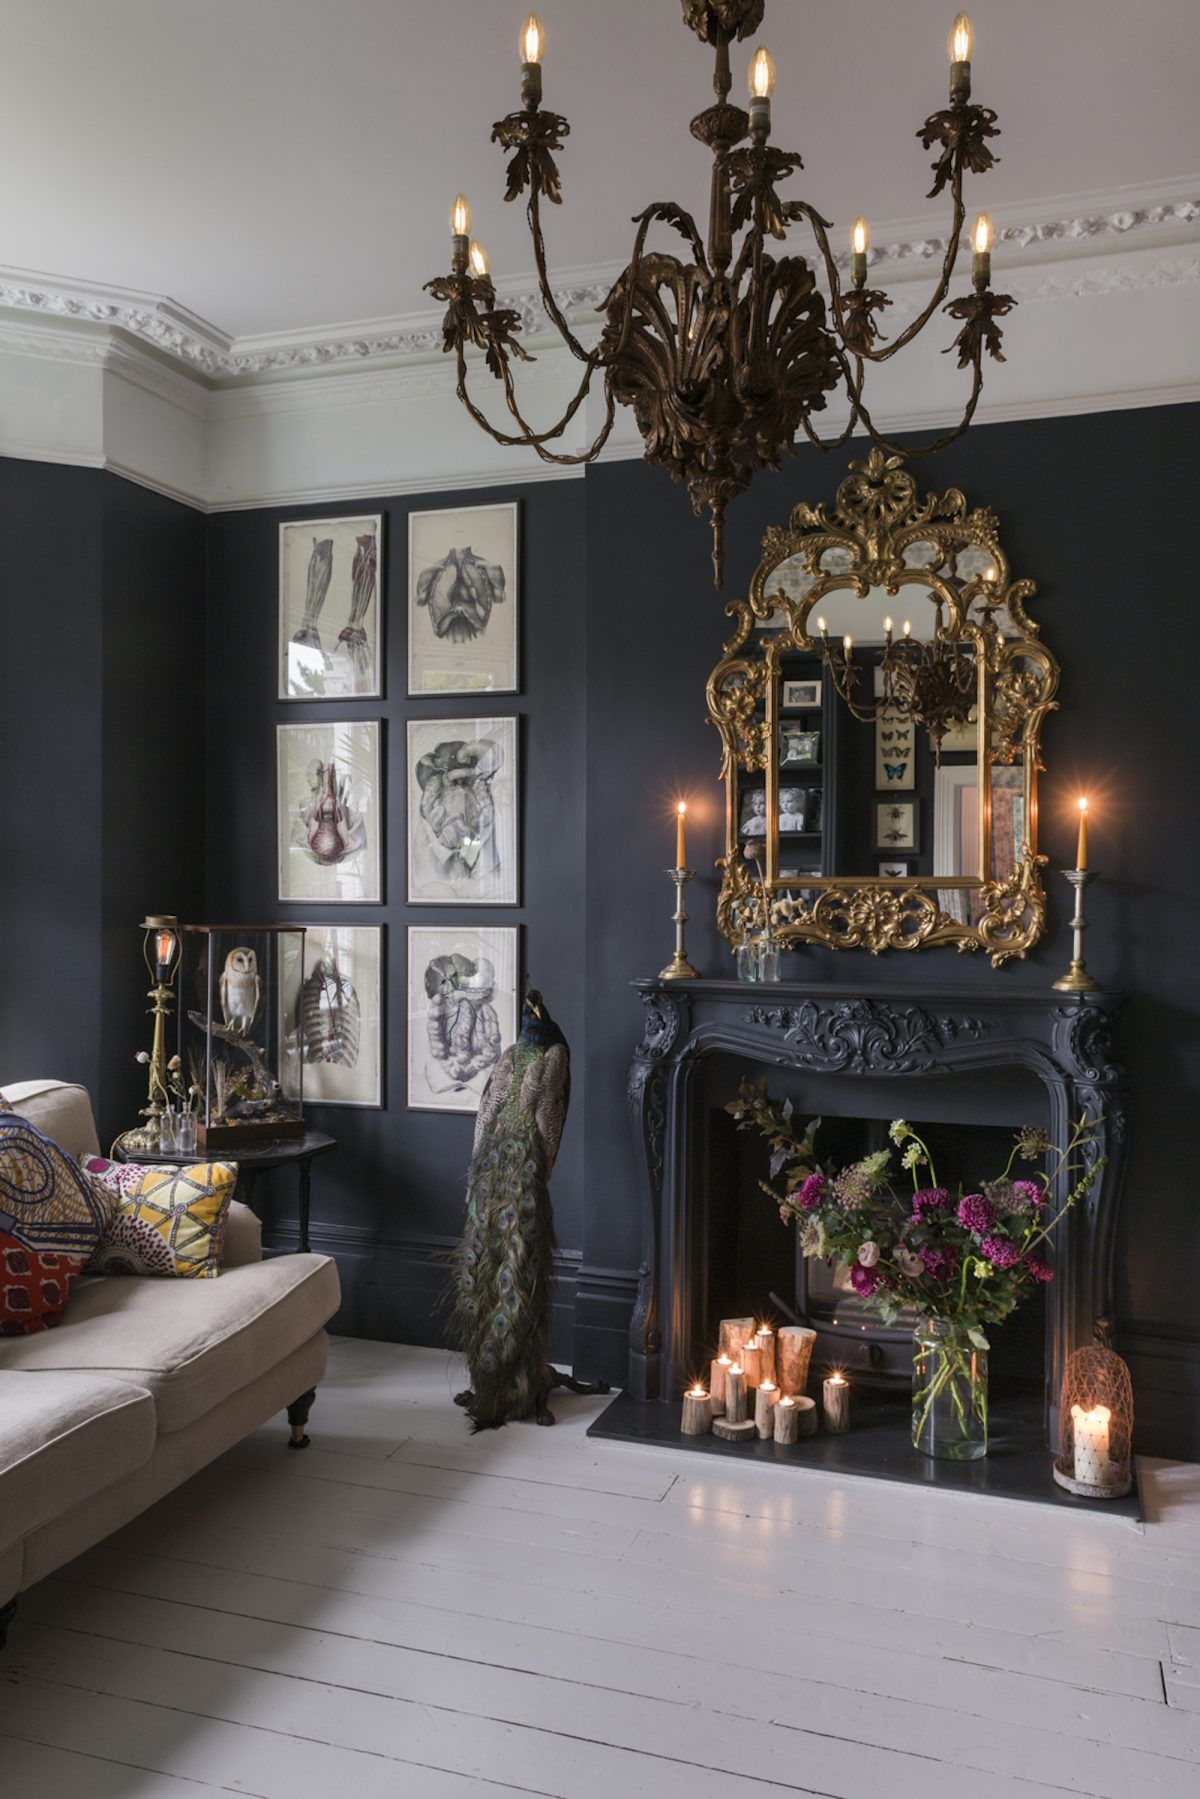 Kempe Sw16 Black Chandelier London Houses Shootfactory Location Boho Dining Room Interior Interior Design